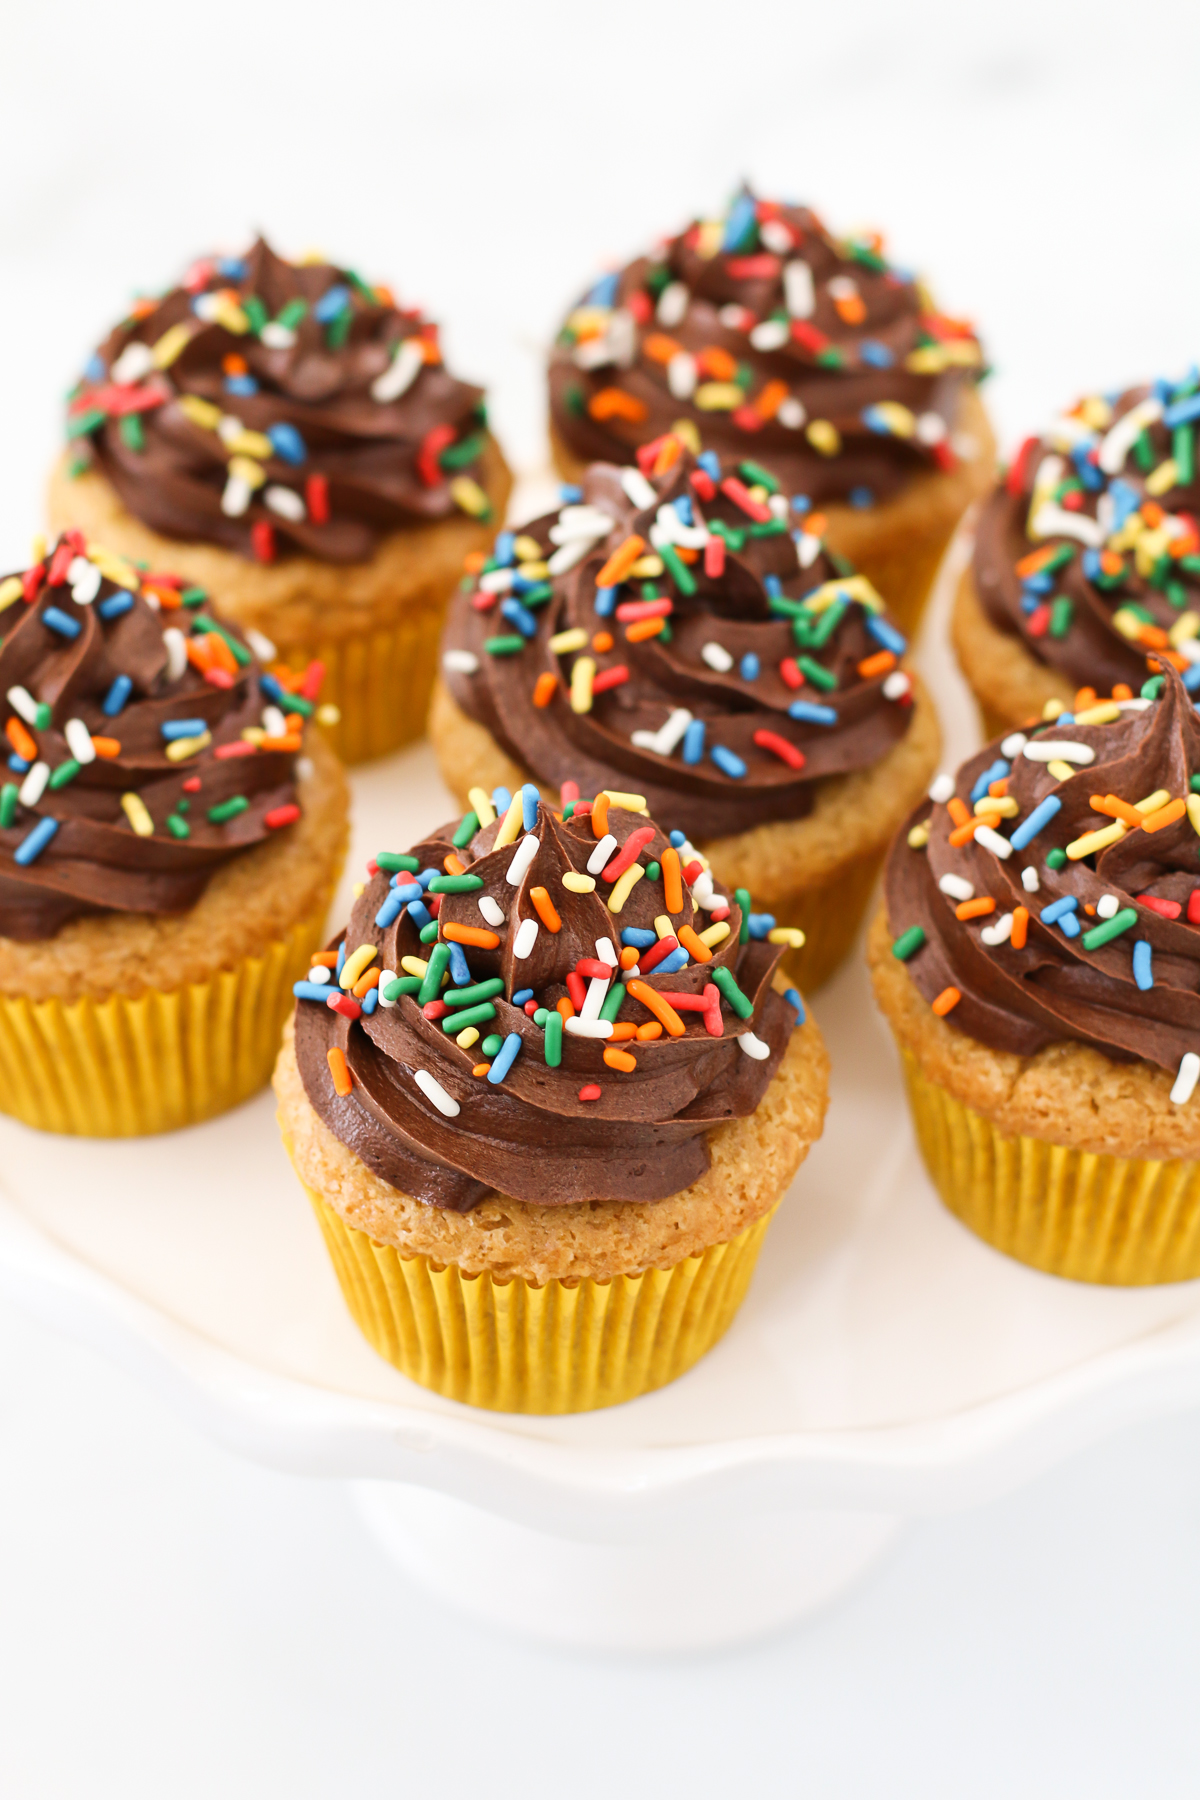 Gluten Free Vegan Vanilla Cupcakes with Chocolate Frosting. The classic flavors of a perfect vanilla cupcake, topped with a rich and creamy chocolate frosting.